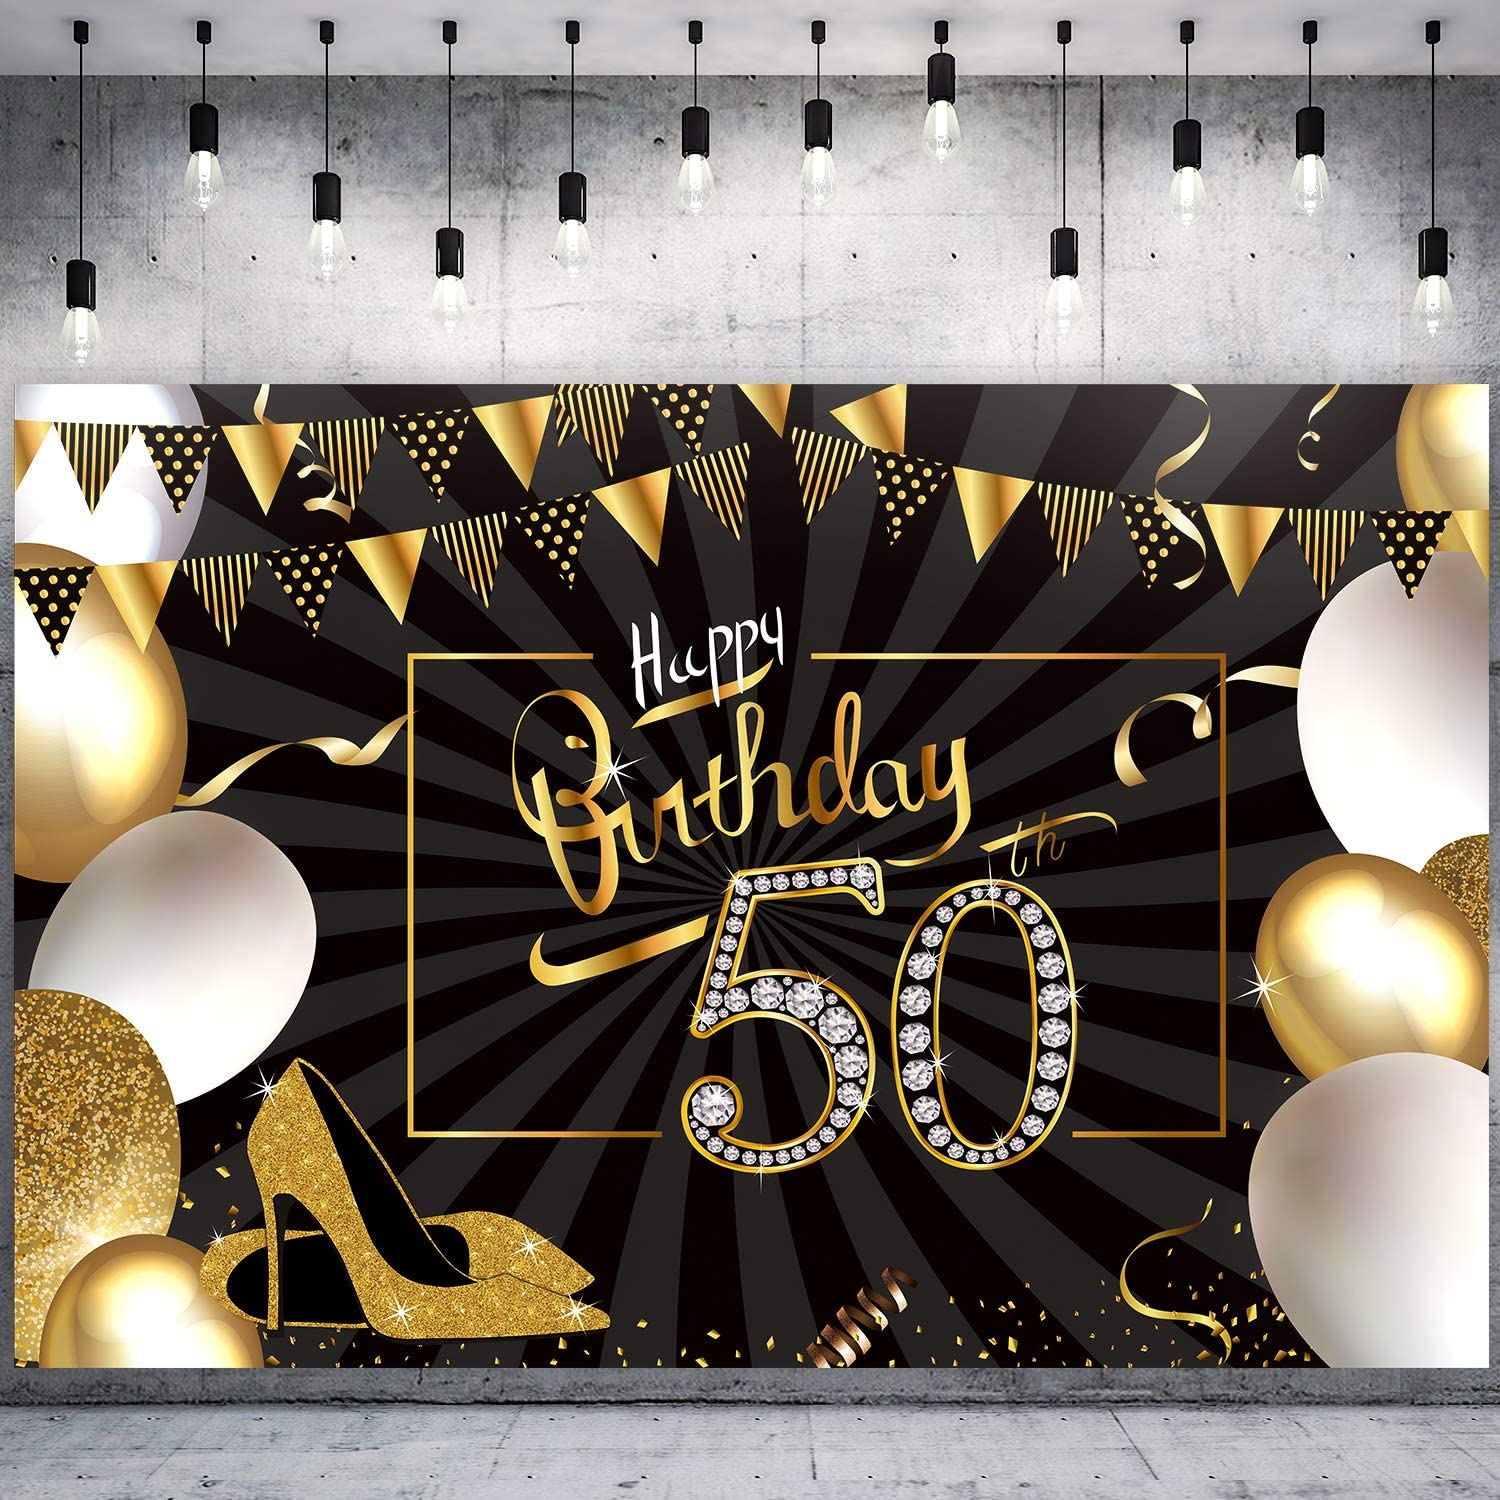 Birthday Celebration, Balloon, Birthday , Qualatex, Gold, Party, Jubileum, 50th  Birthday transparent background PNG clipart | HiClipart